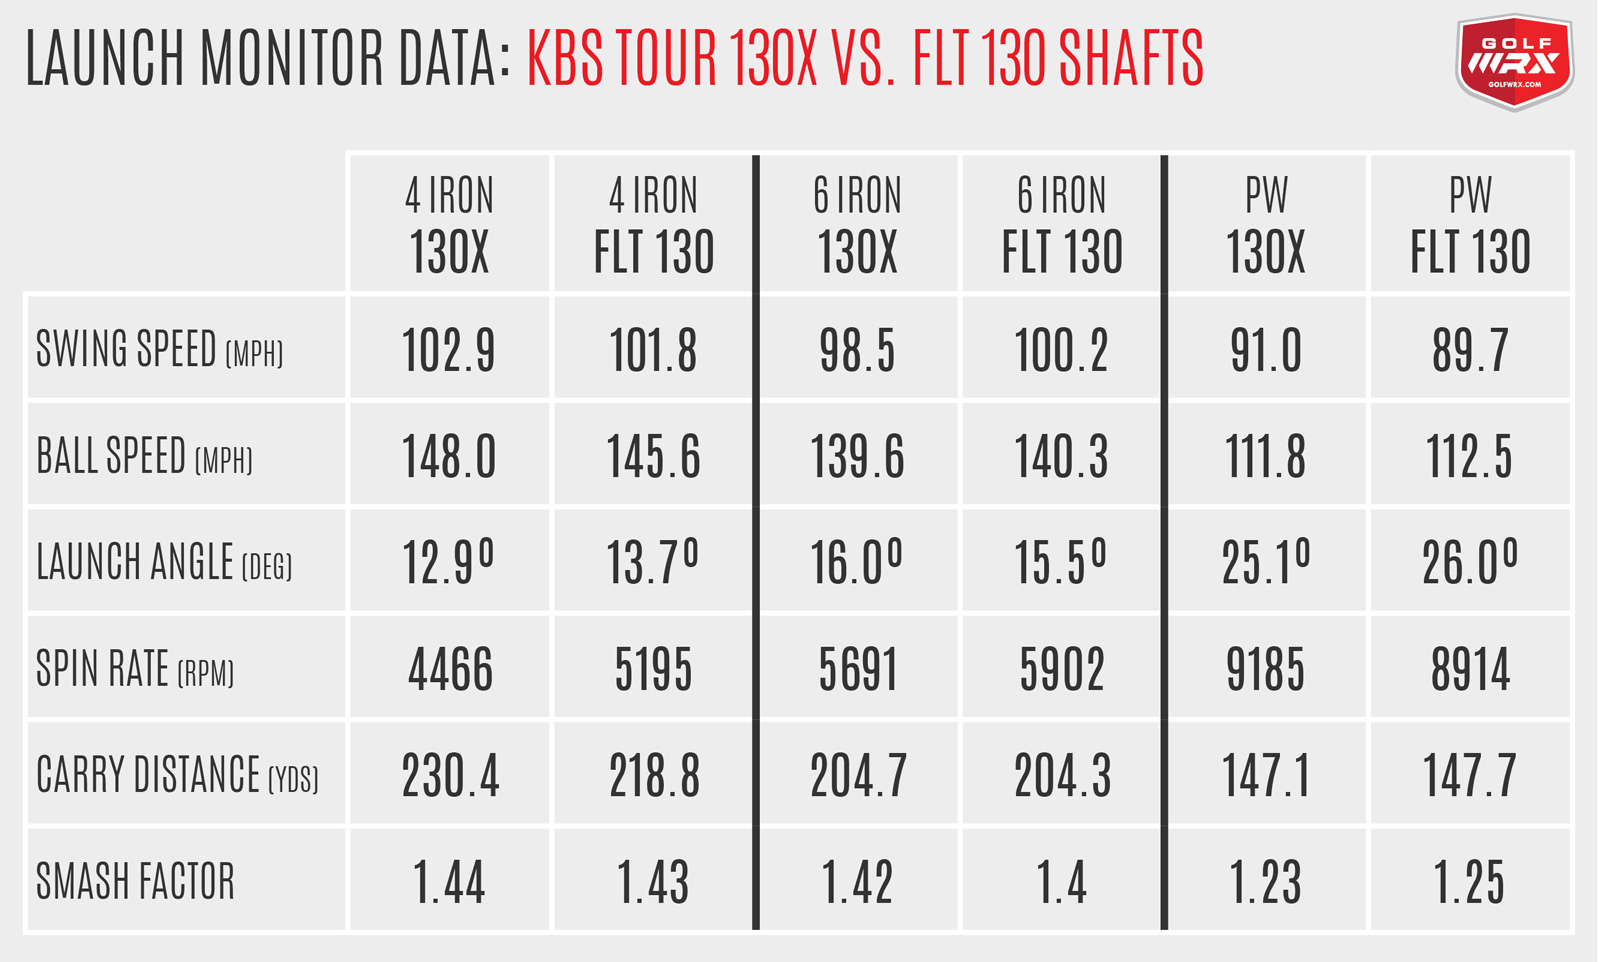 KBSTour130Shafts